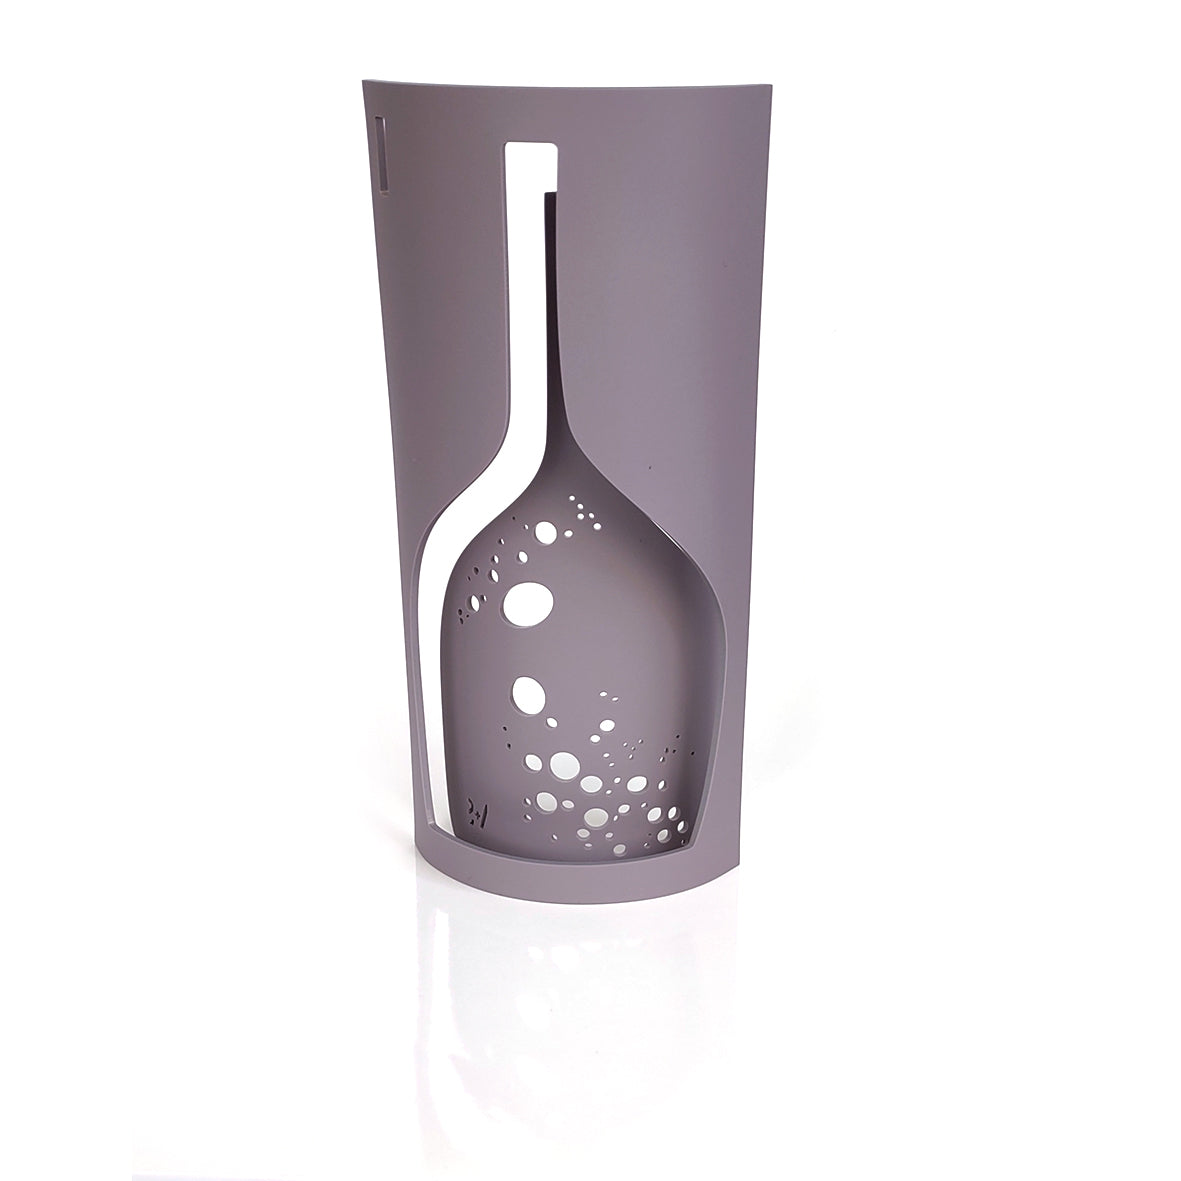 LAUSANNE°SOLO decorative object. 1 set - D03b- Aura Lavander